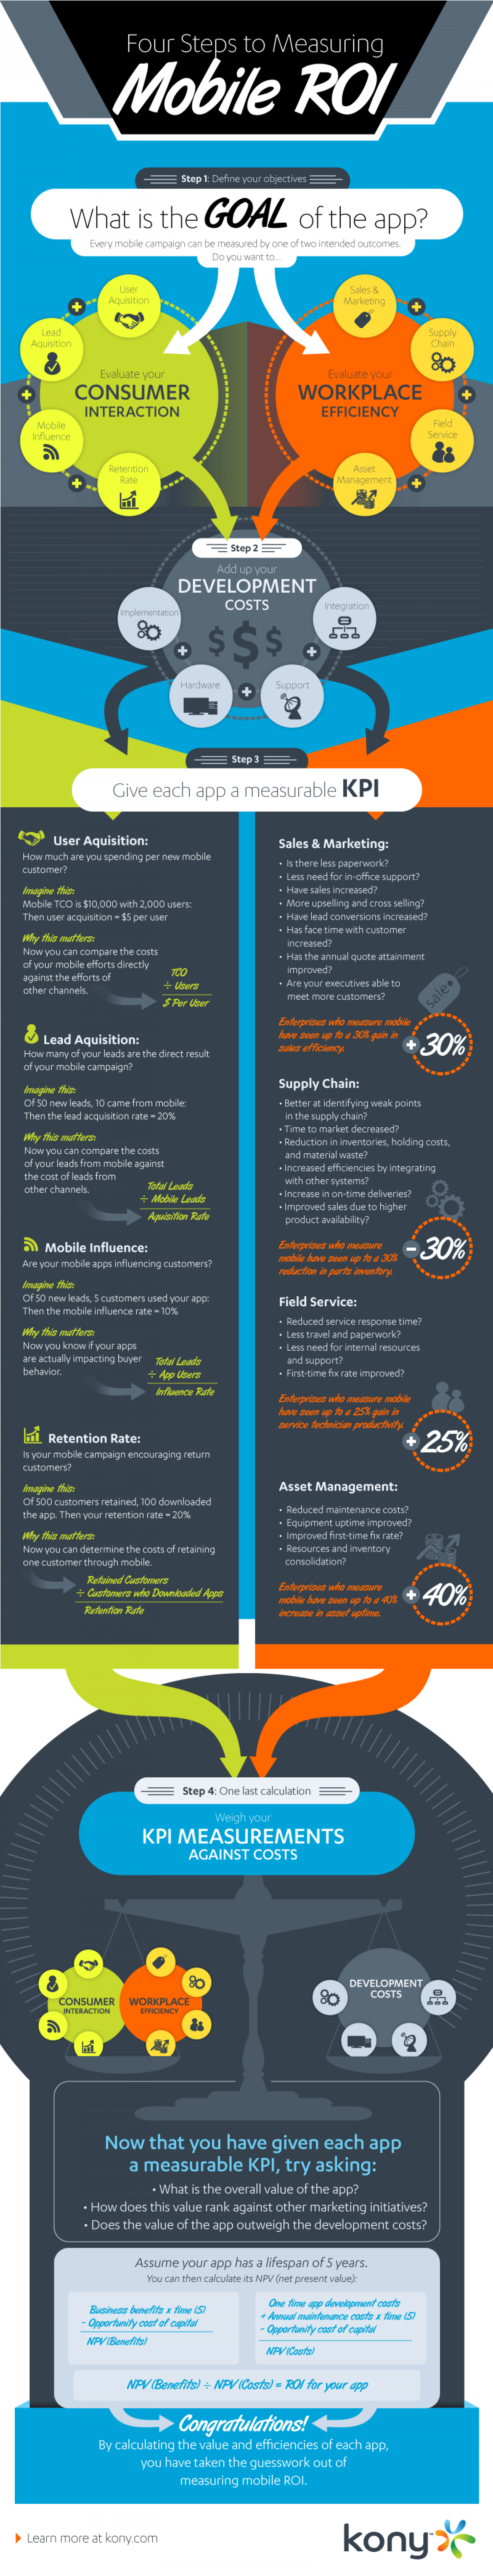 Four Steps to Measuring Mobile ROI Infographic